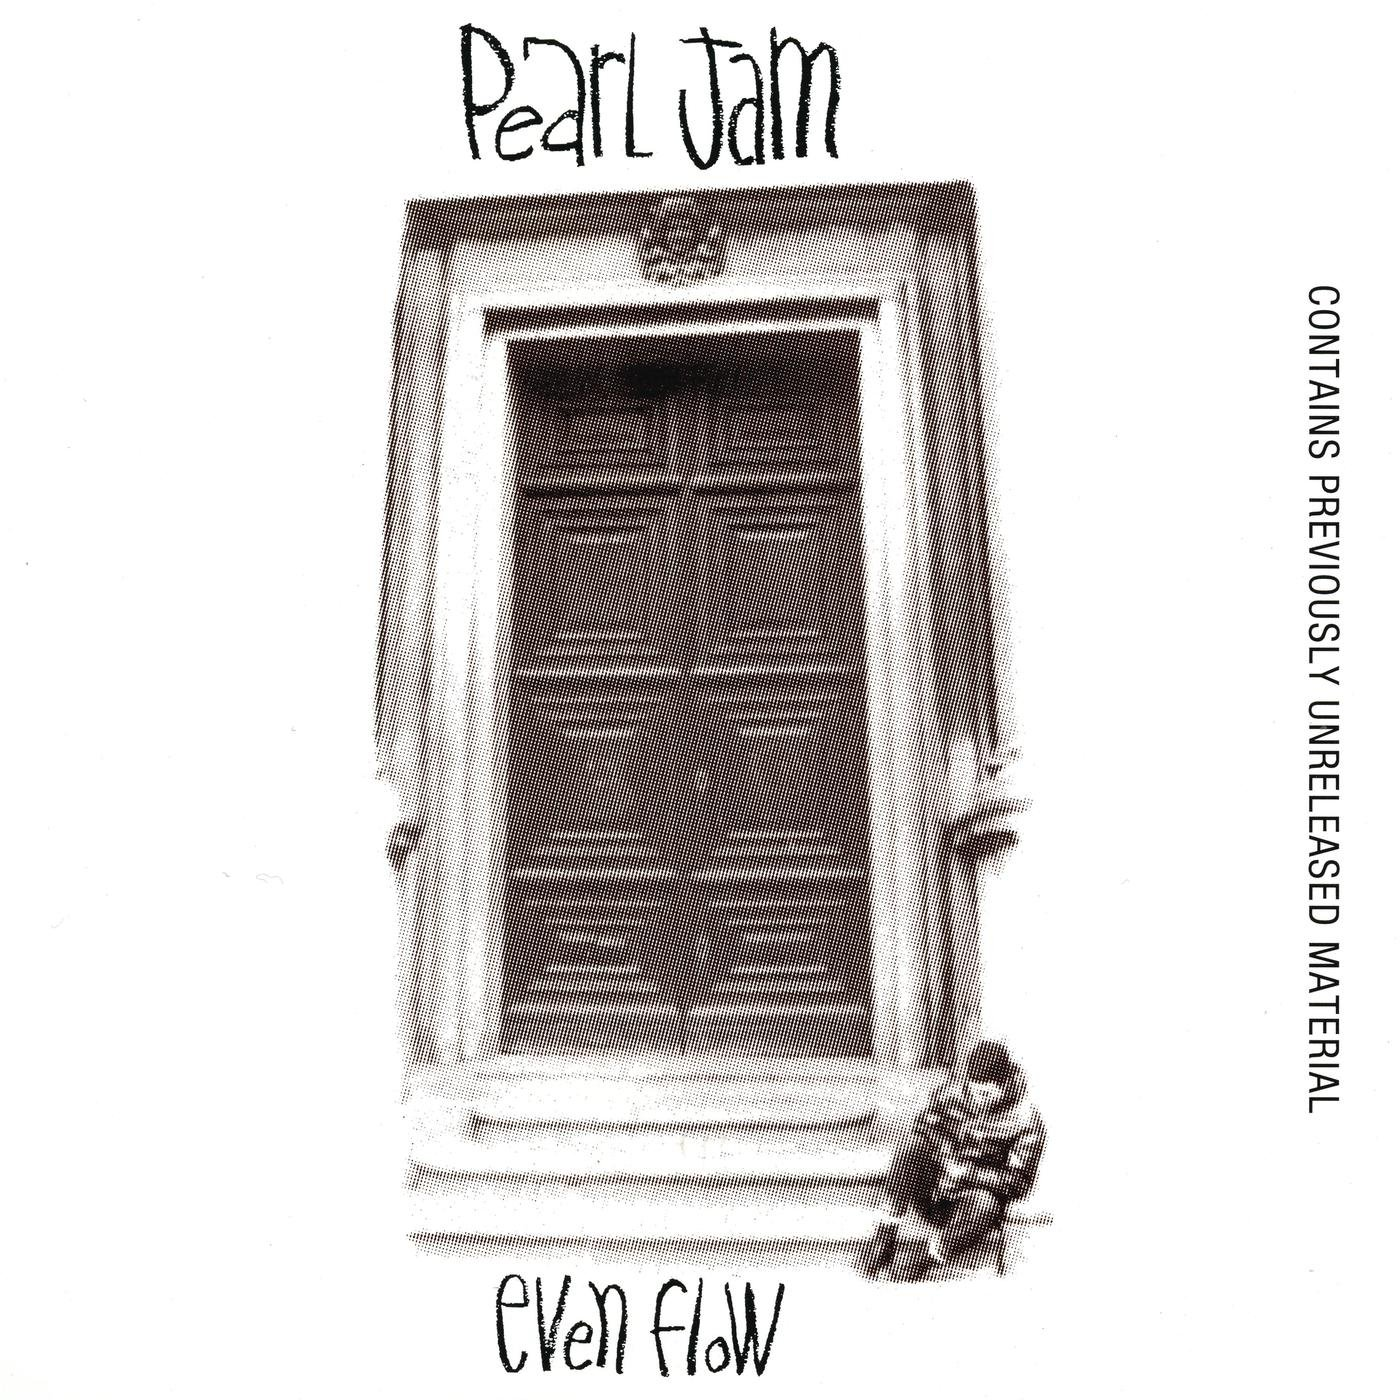 Even Flow by Pearl Jam